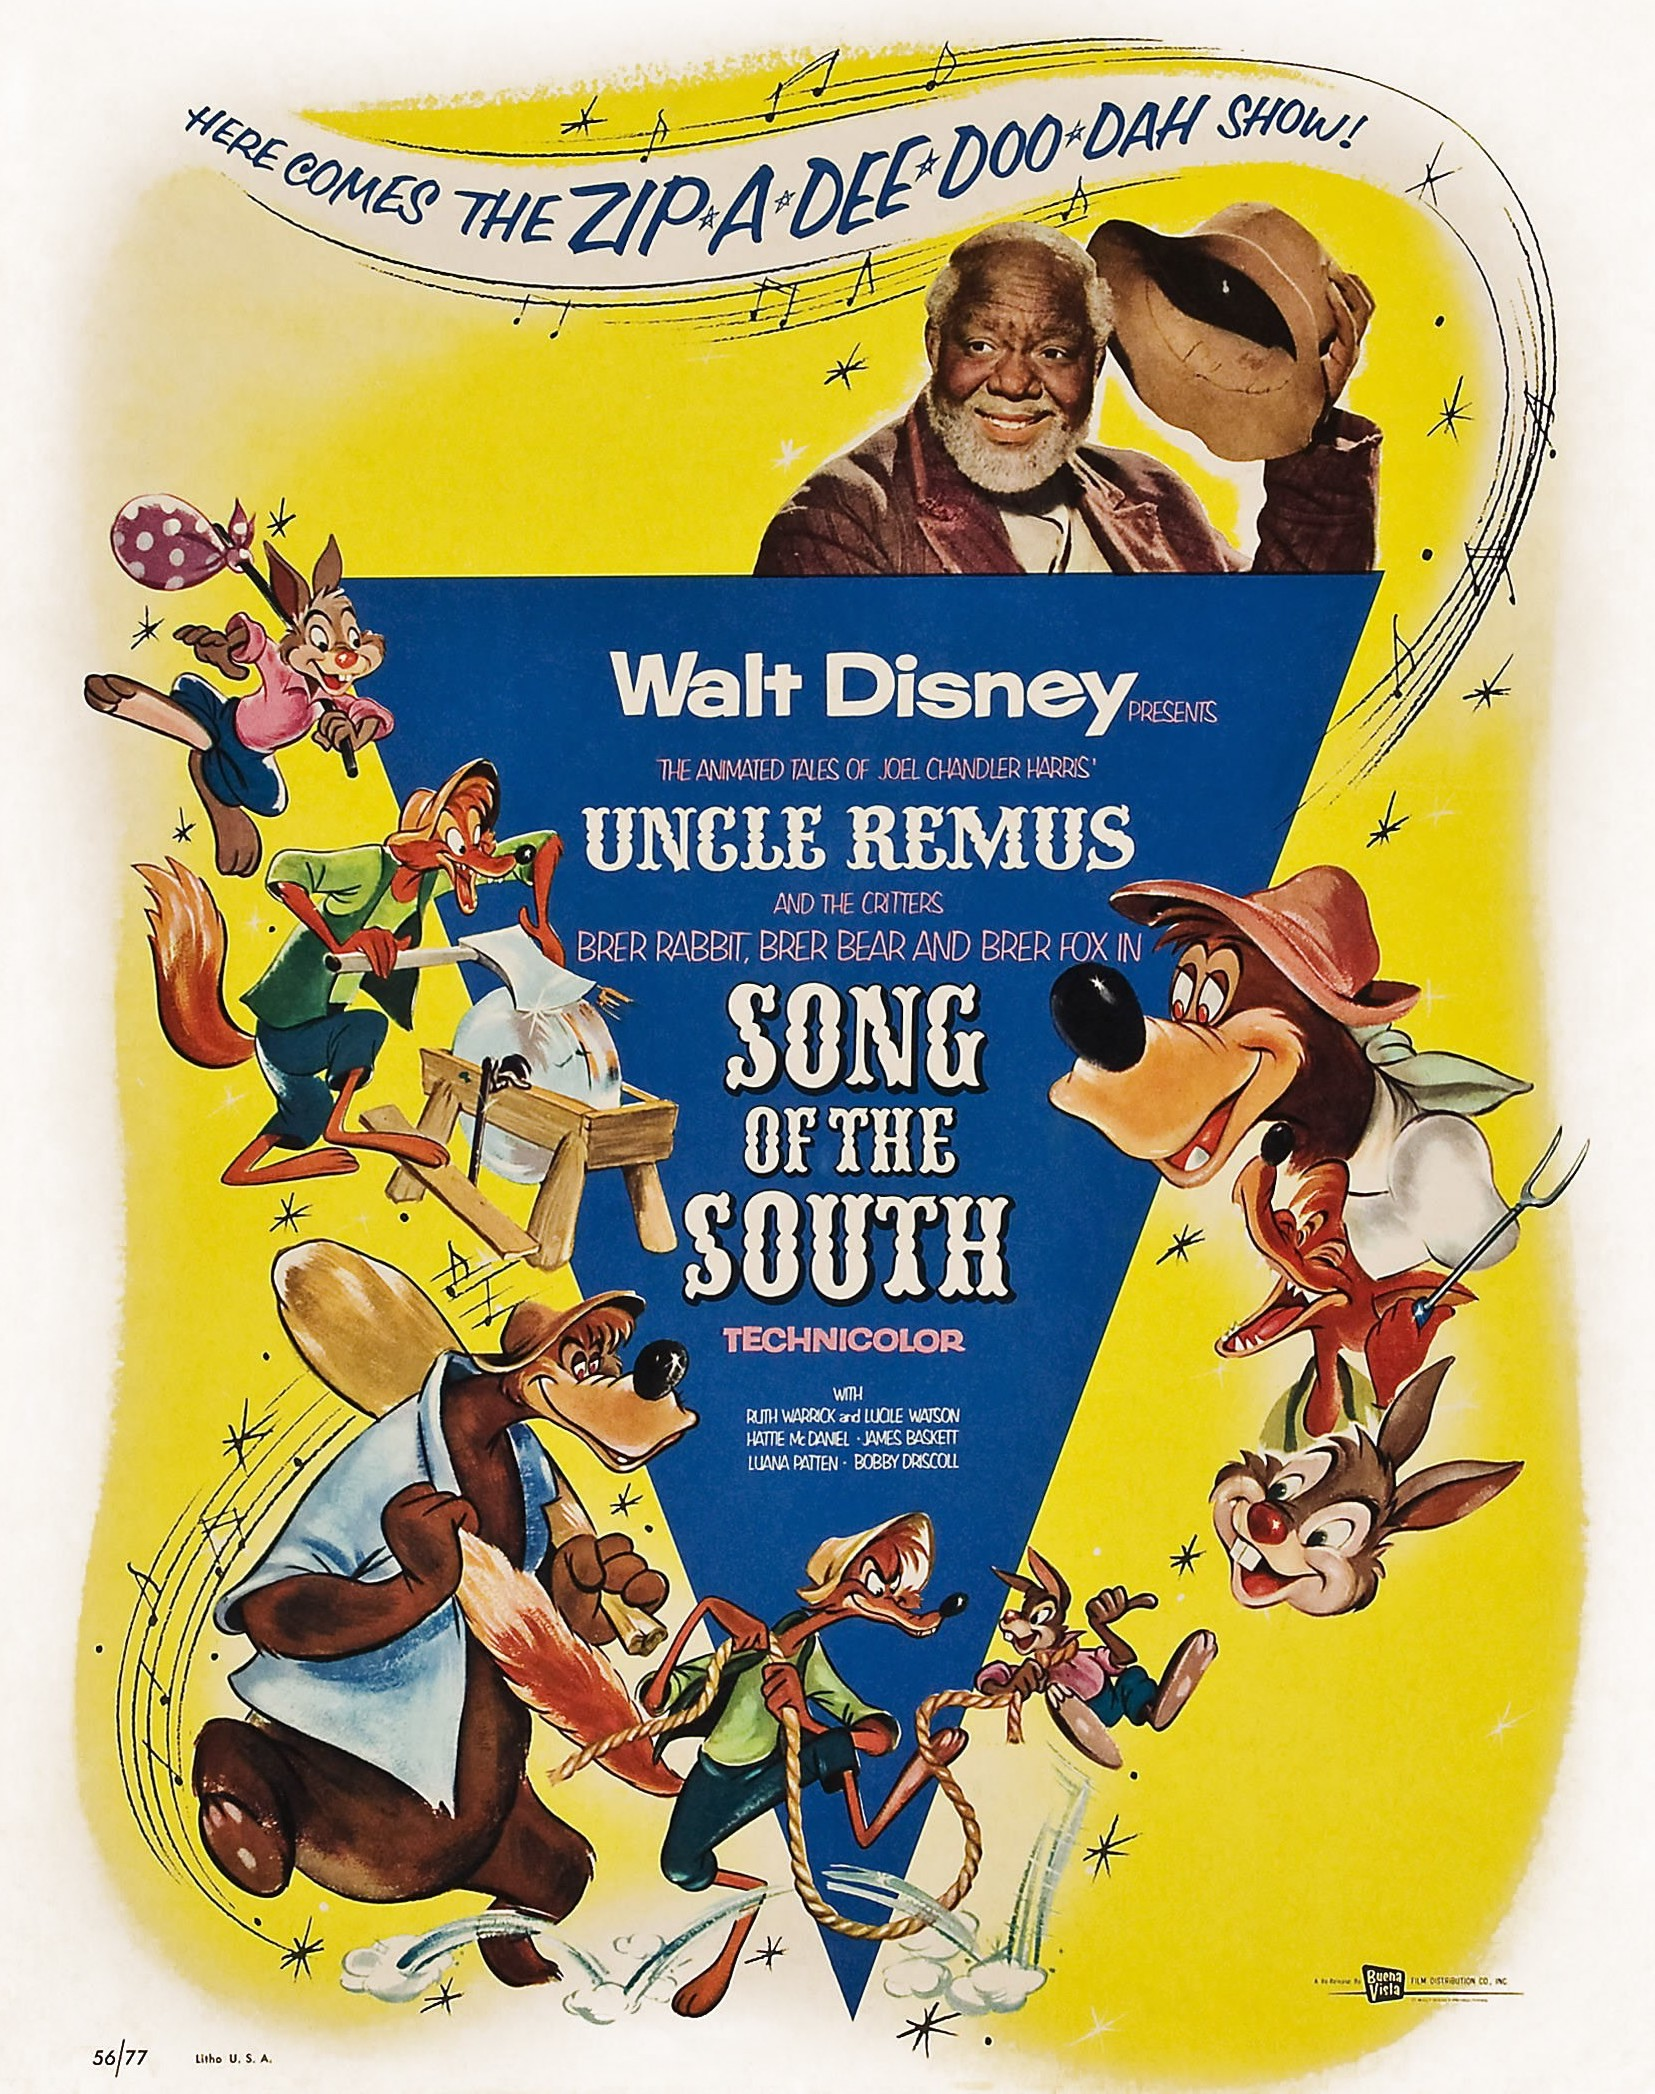 'Song Of The South' poster with James Baskett on top, who played Uncle Remus.